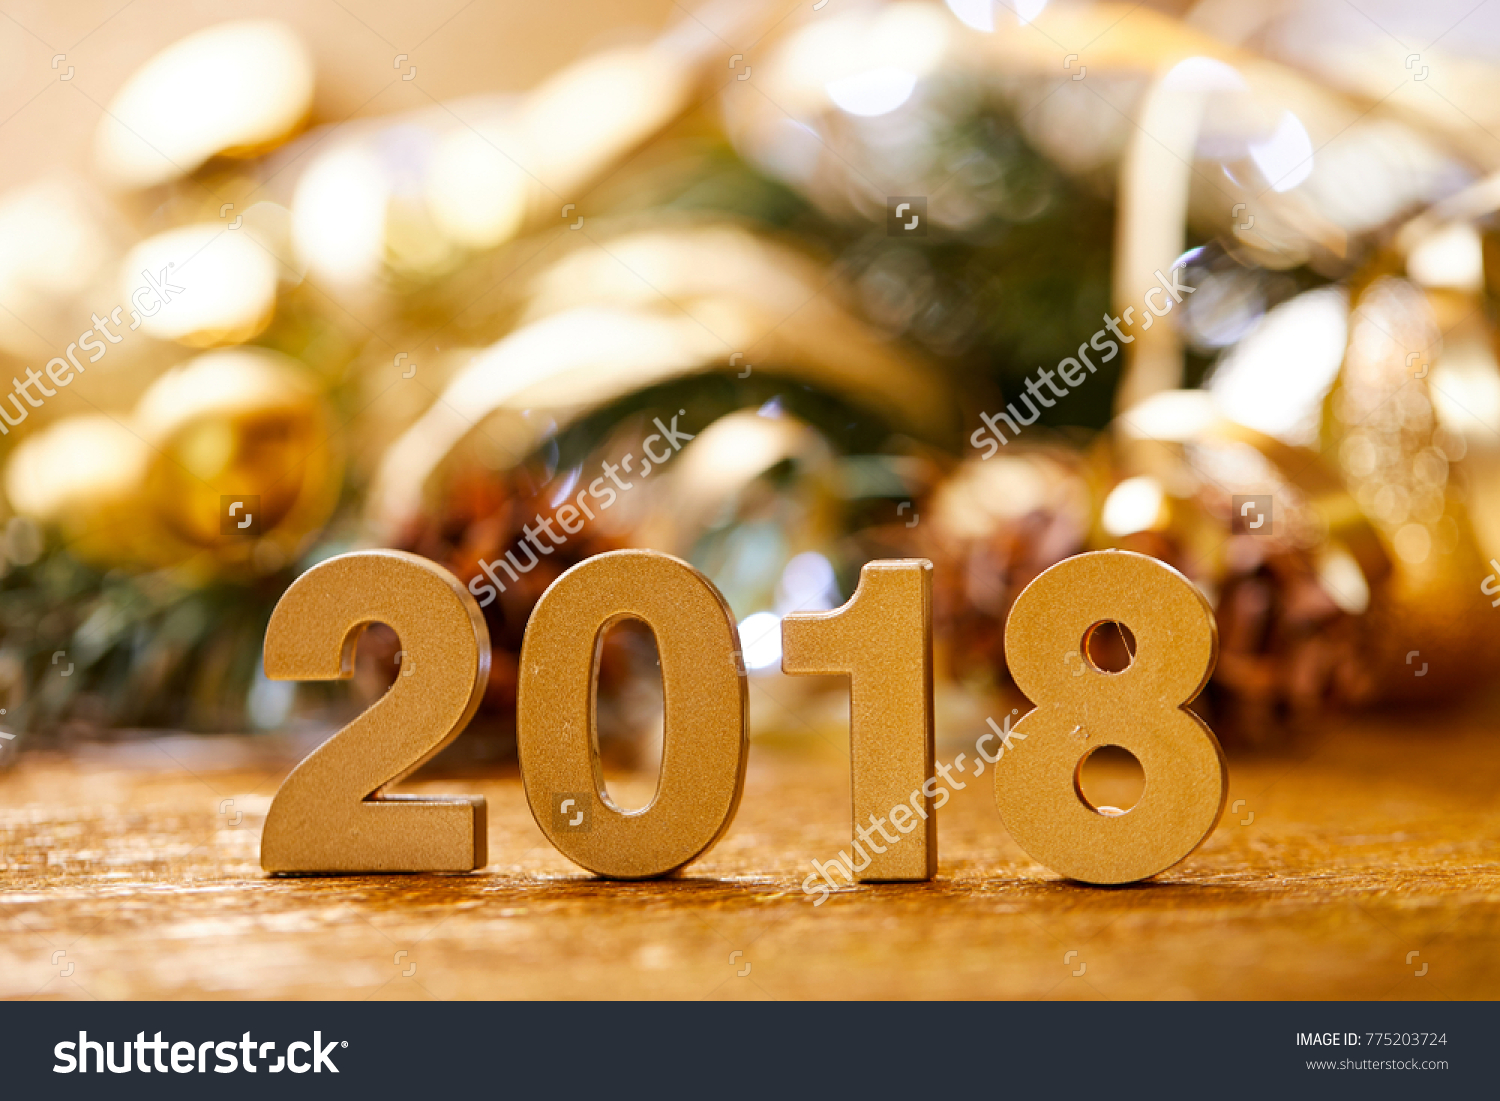 Christmas Card New 2018 Year Stock Photo (Edit Now) 775203724 ...